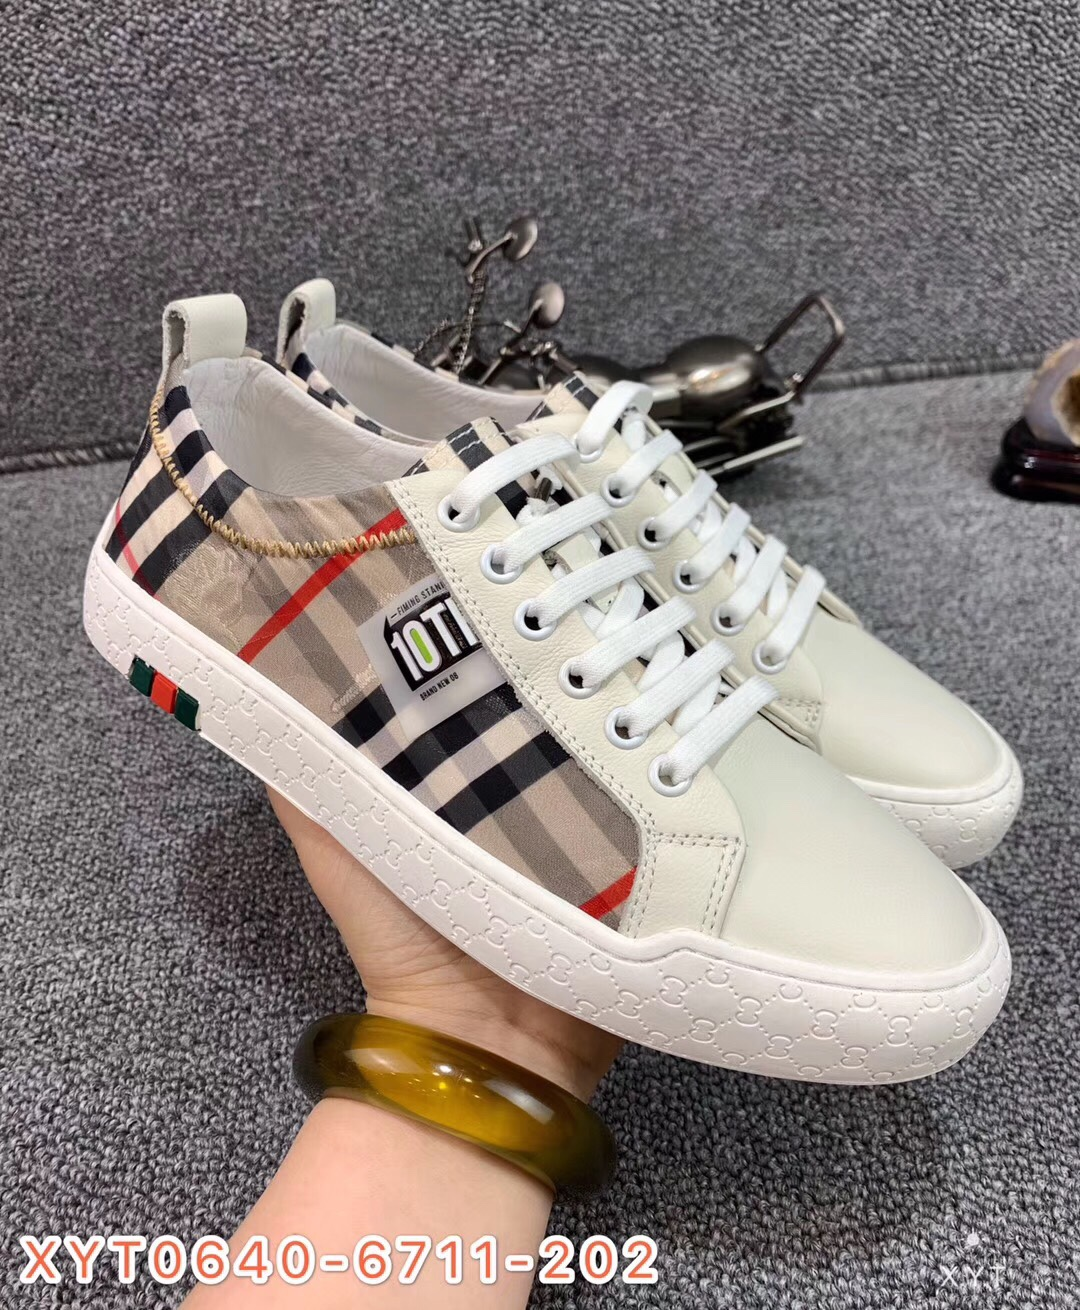 [pictures of West Asia] 20 years new genuine leather shoes, plaid stitching casual shoes, versatile shoes and fashionable shoes